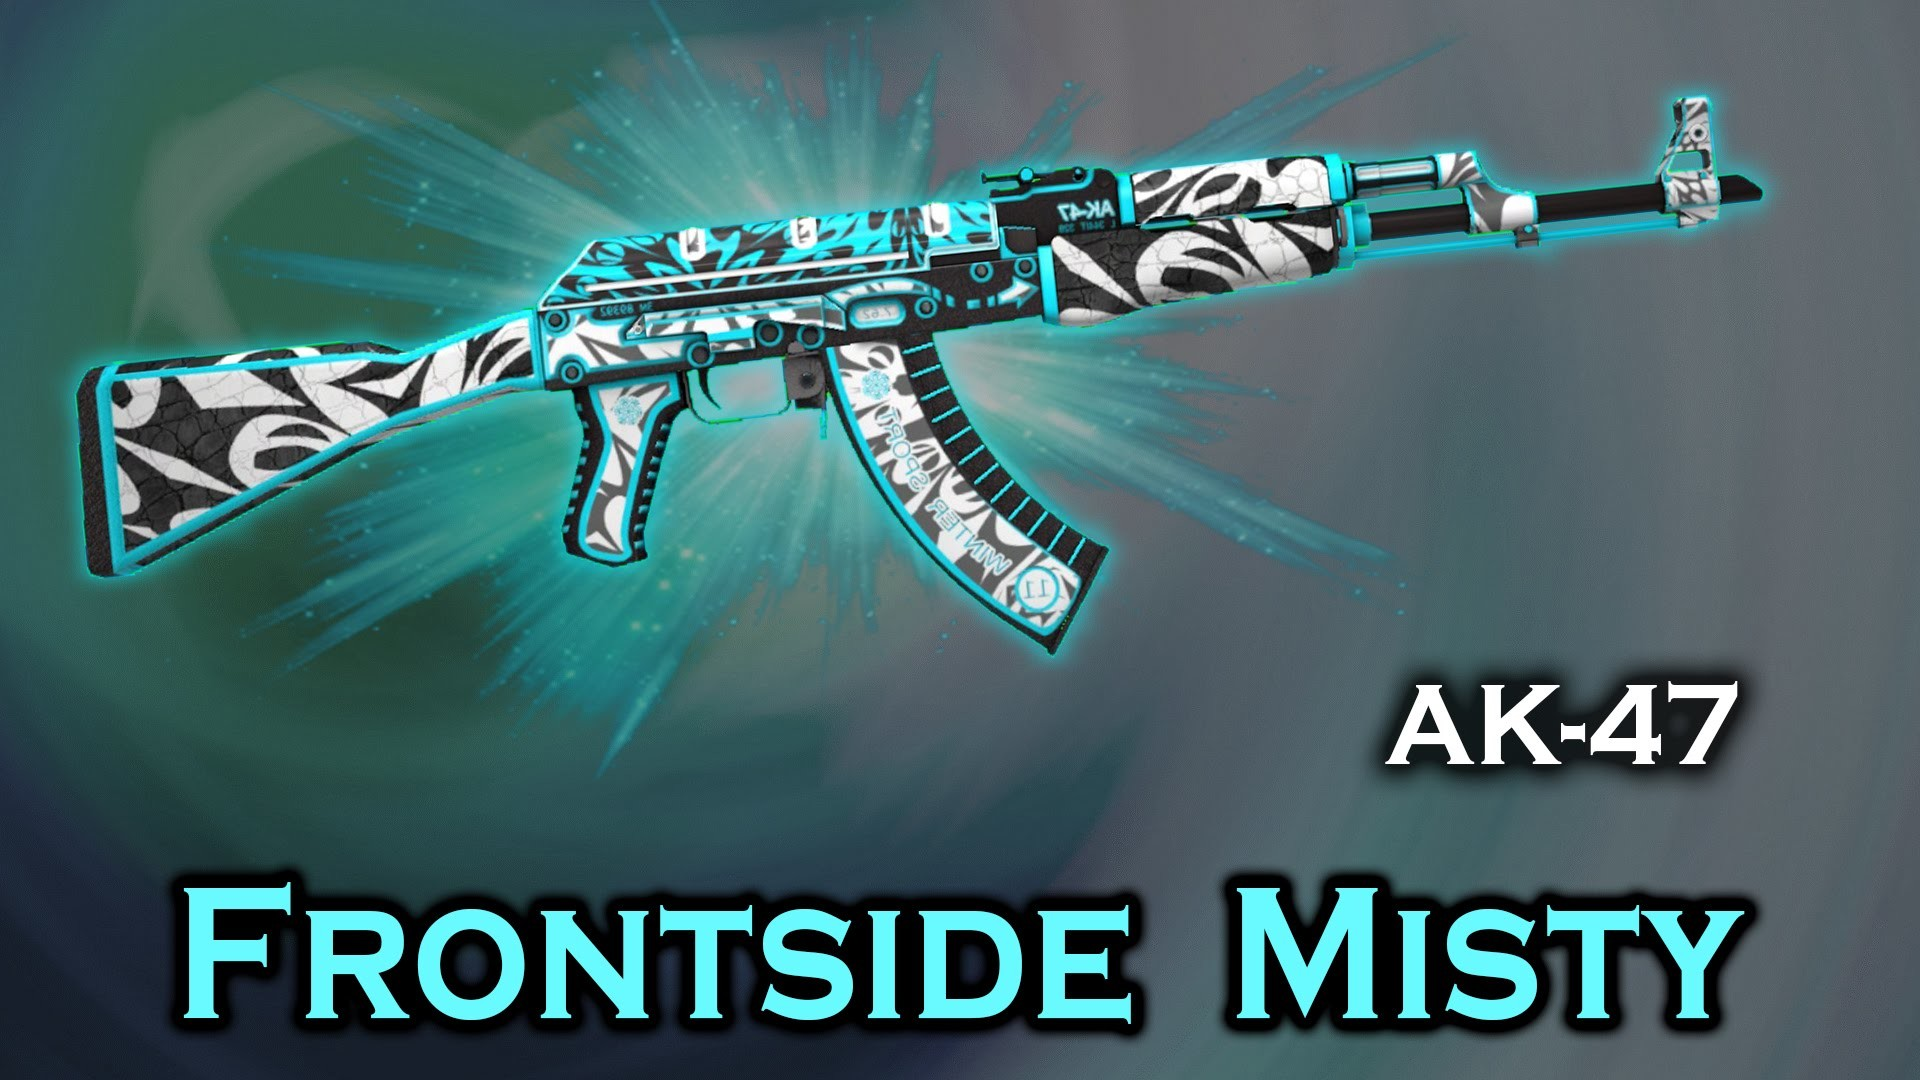 Res: 1920x1080, Best Frontside Misty Picture by Laurence Minarik